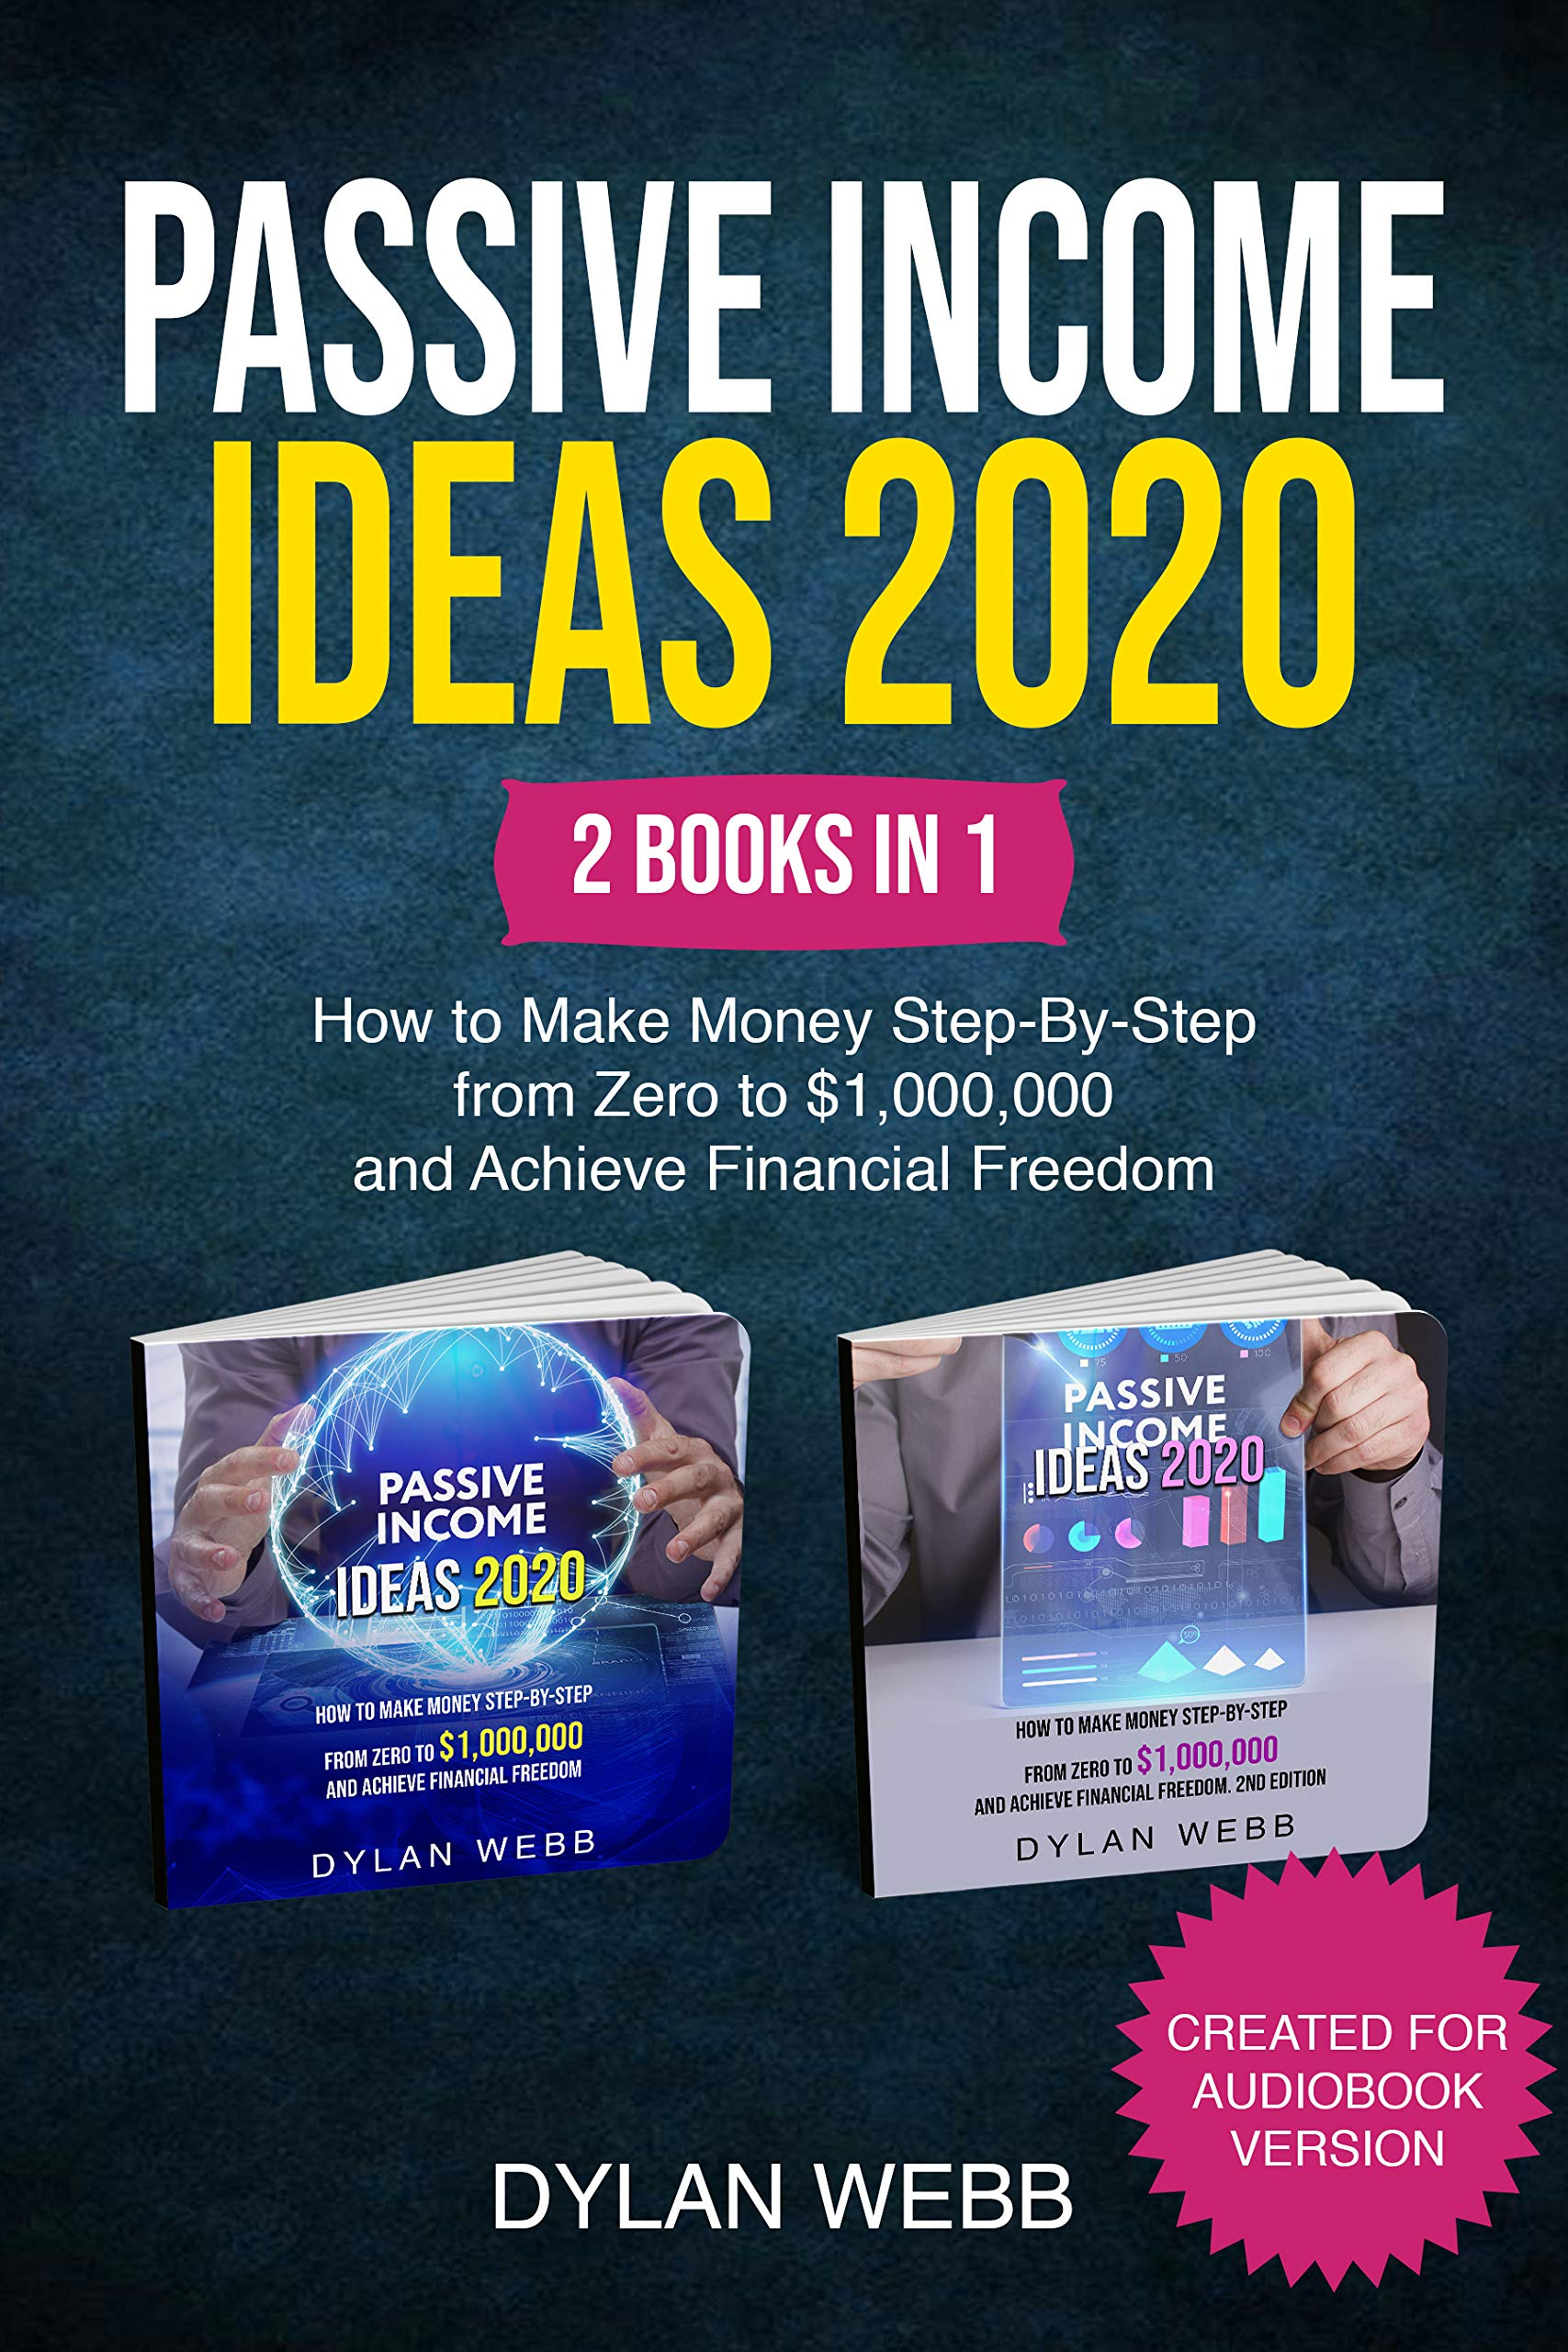 PASSIVE INCOME IDEAS 2020: 2 BOOKS IN 1. How to Make Money Step-By-Step from Zero to $1,000,000 and Achieve Financial Freedom